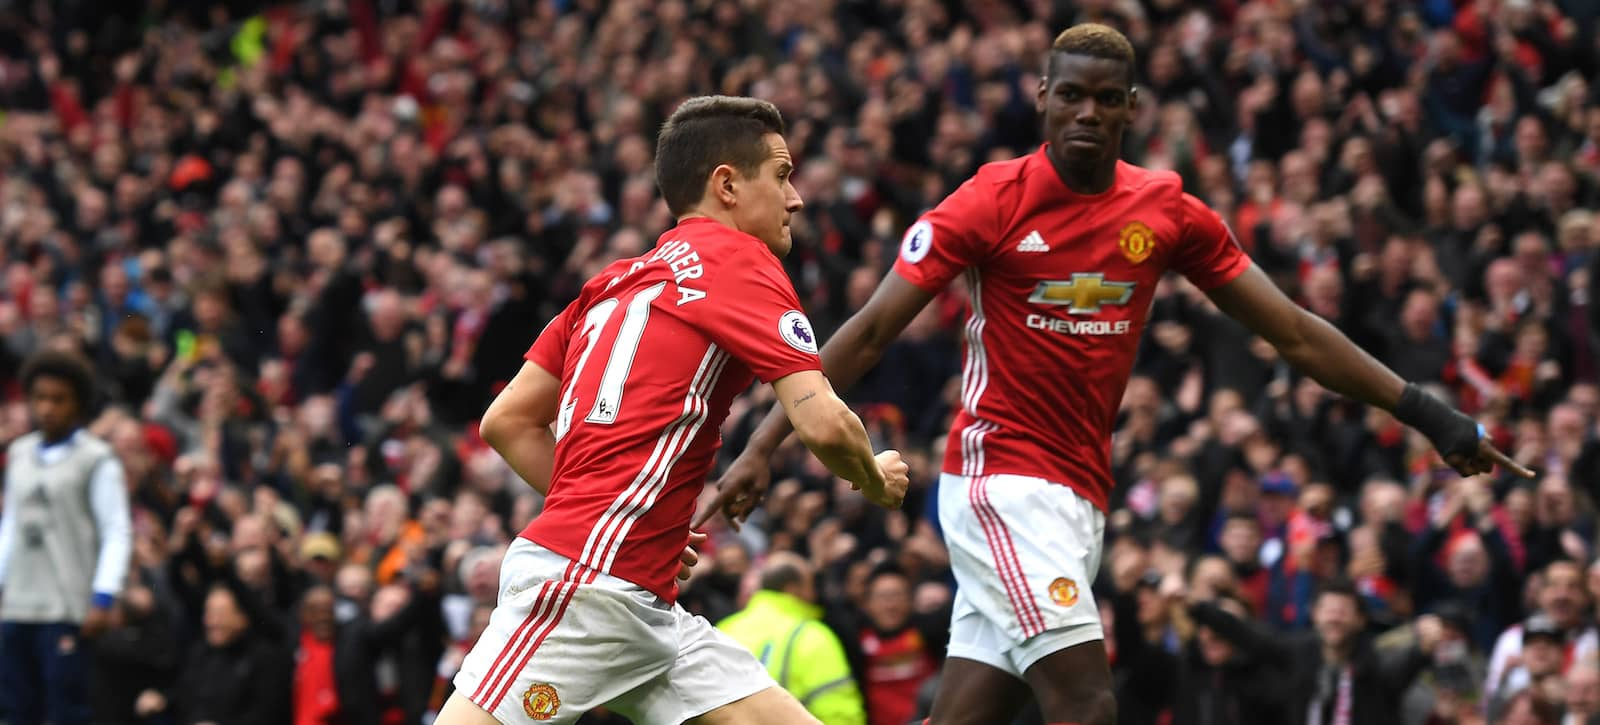 Ander Herrera suggests Man United's Paul Pogba is inconsistent